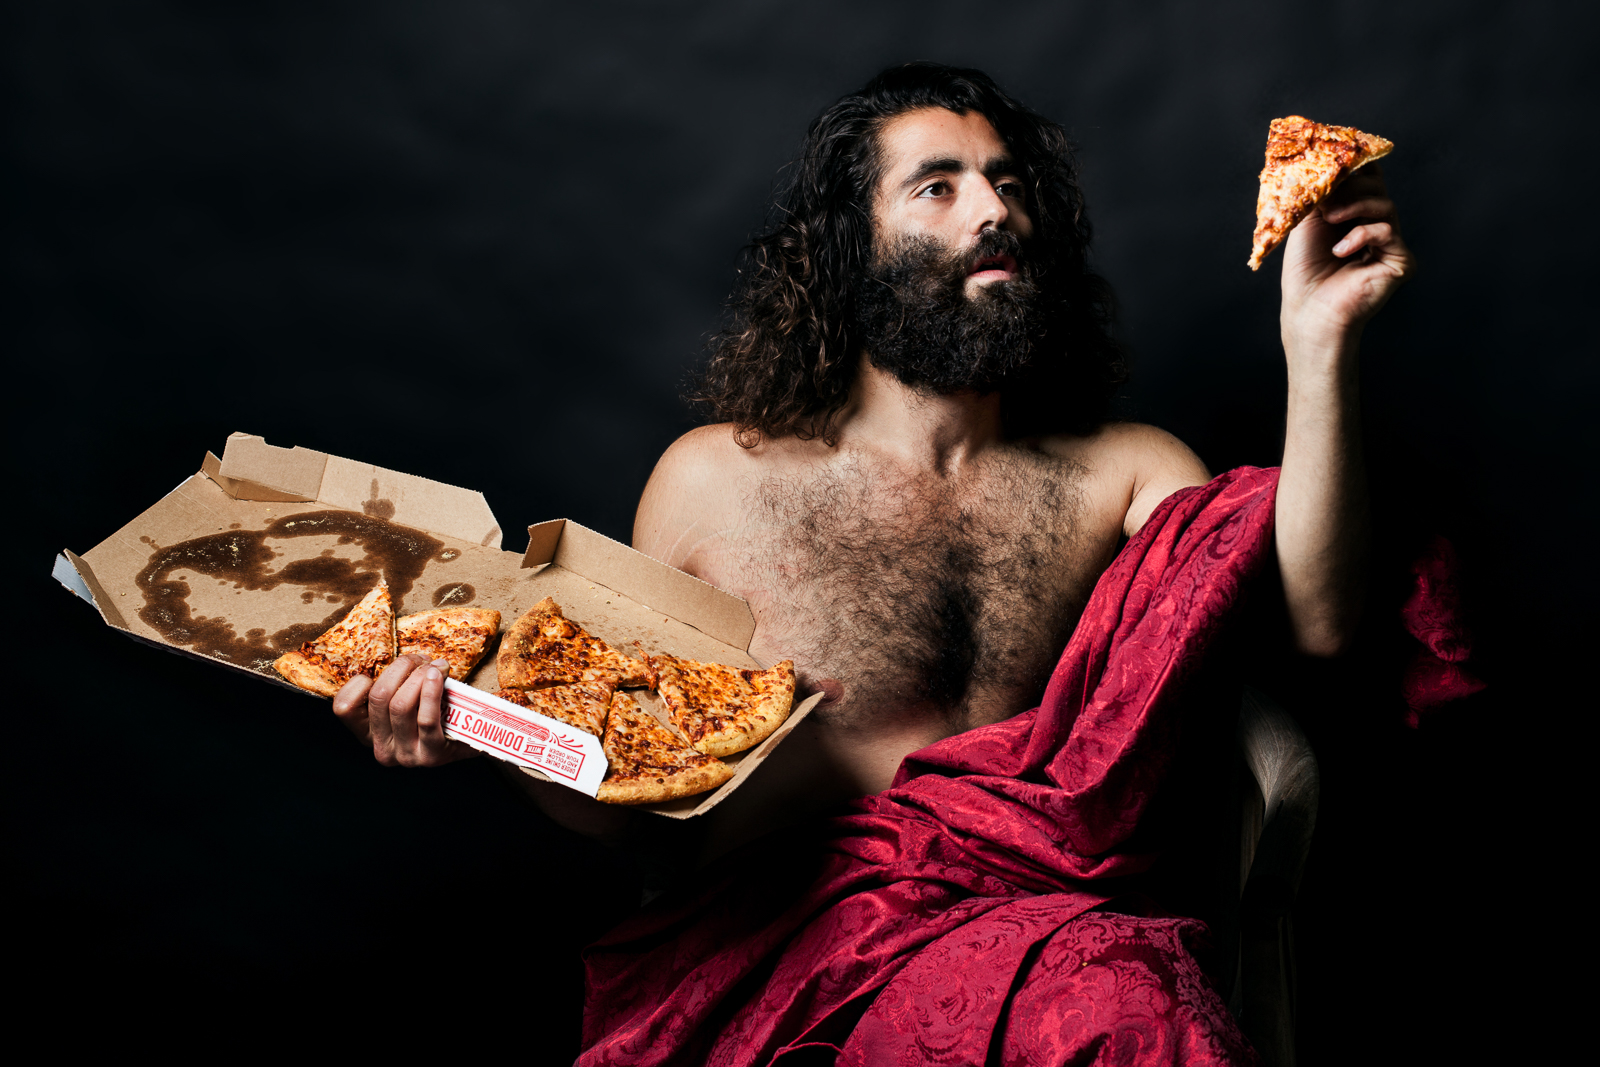 CONTEMPORARY PIECES - RENAISSANCE-INSPIRED IMAGES WITH A FAST FOOD TWIST